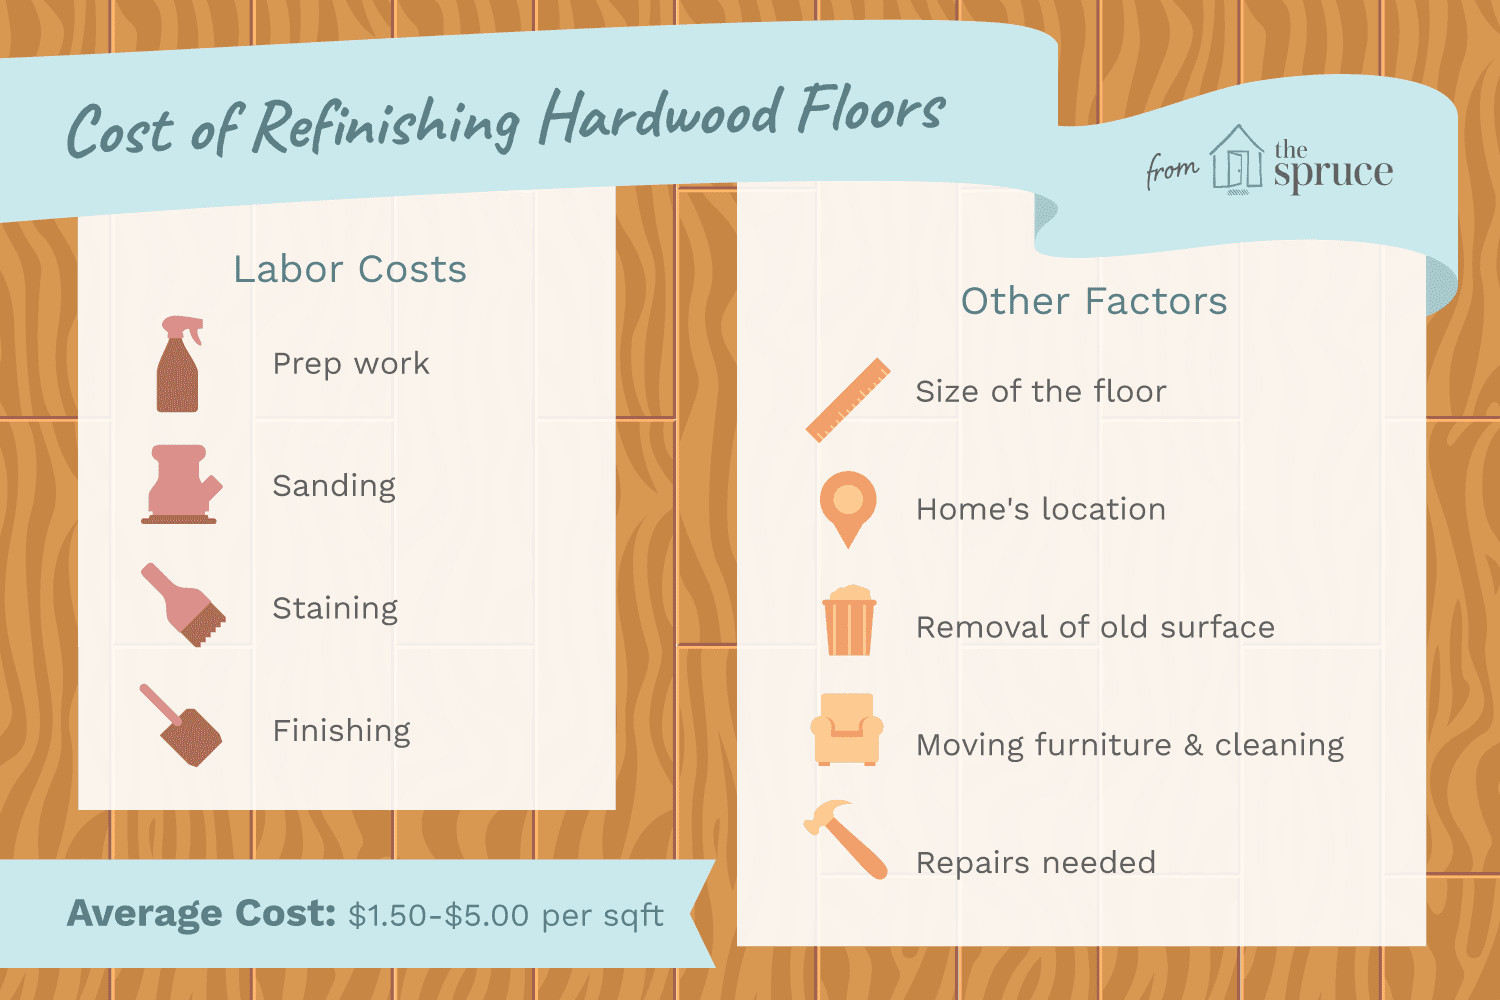 Refinishing Hardwood Floors One Room at A Time Of the Cost to Refinish Hardwood Floors Regarding Cost to Refinish Hardwood Floors 1314853 Final 5bb6259346e0fb0026825ce2